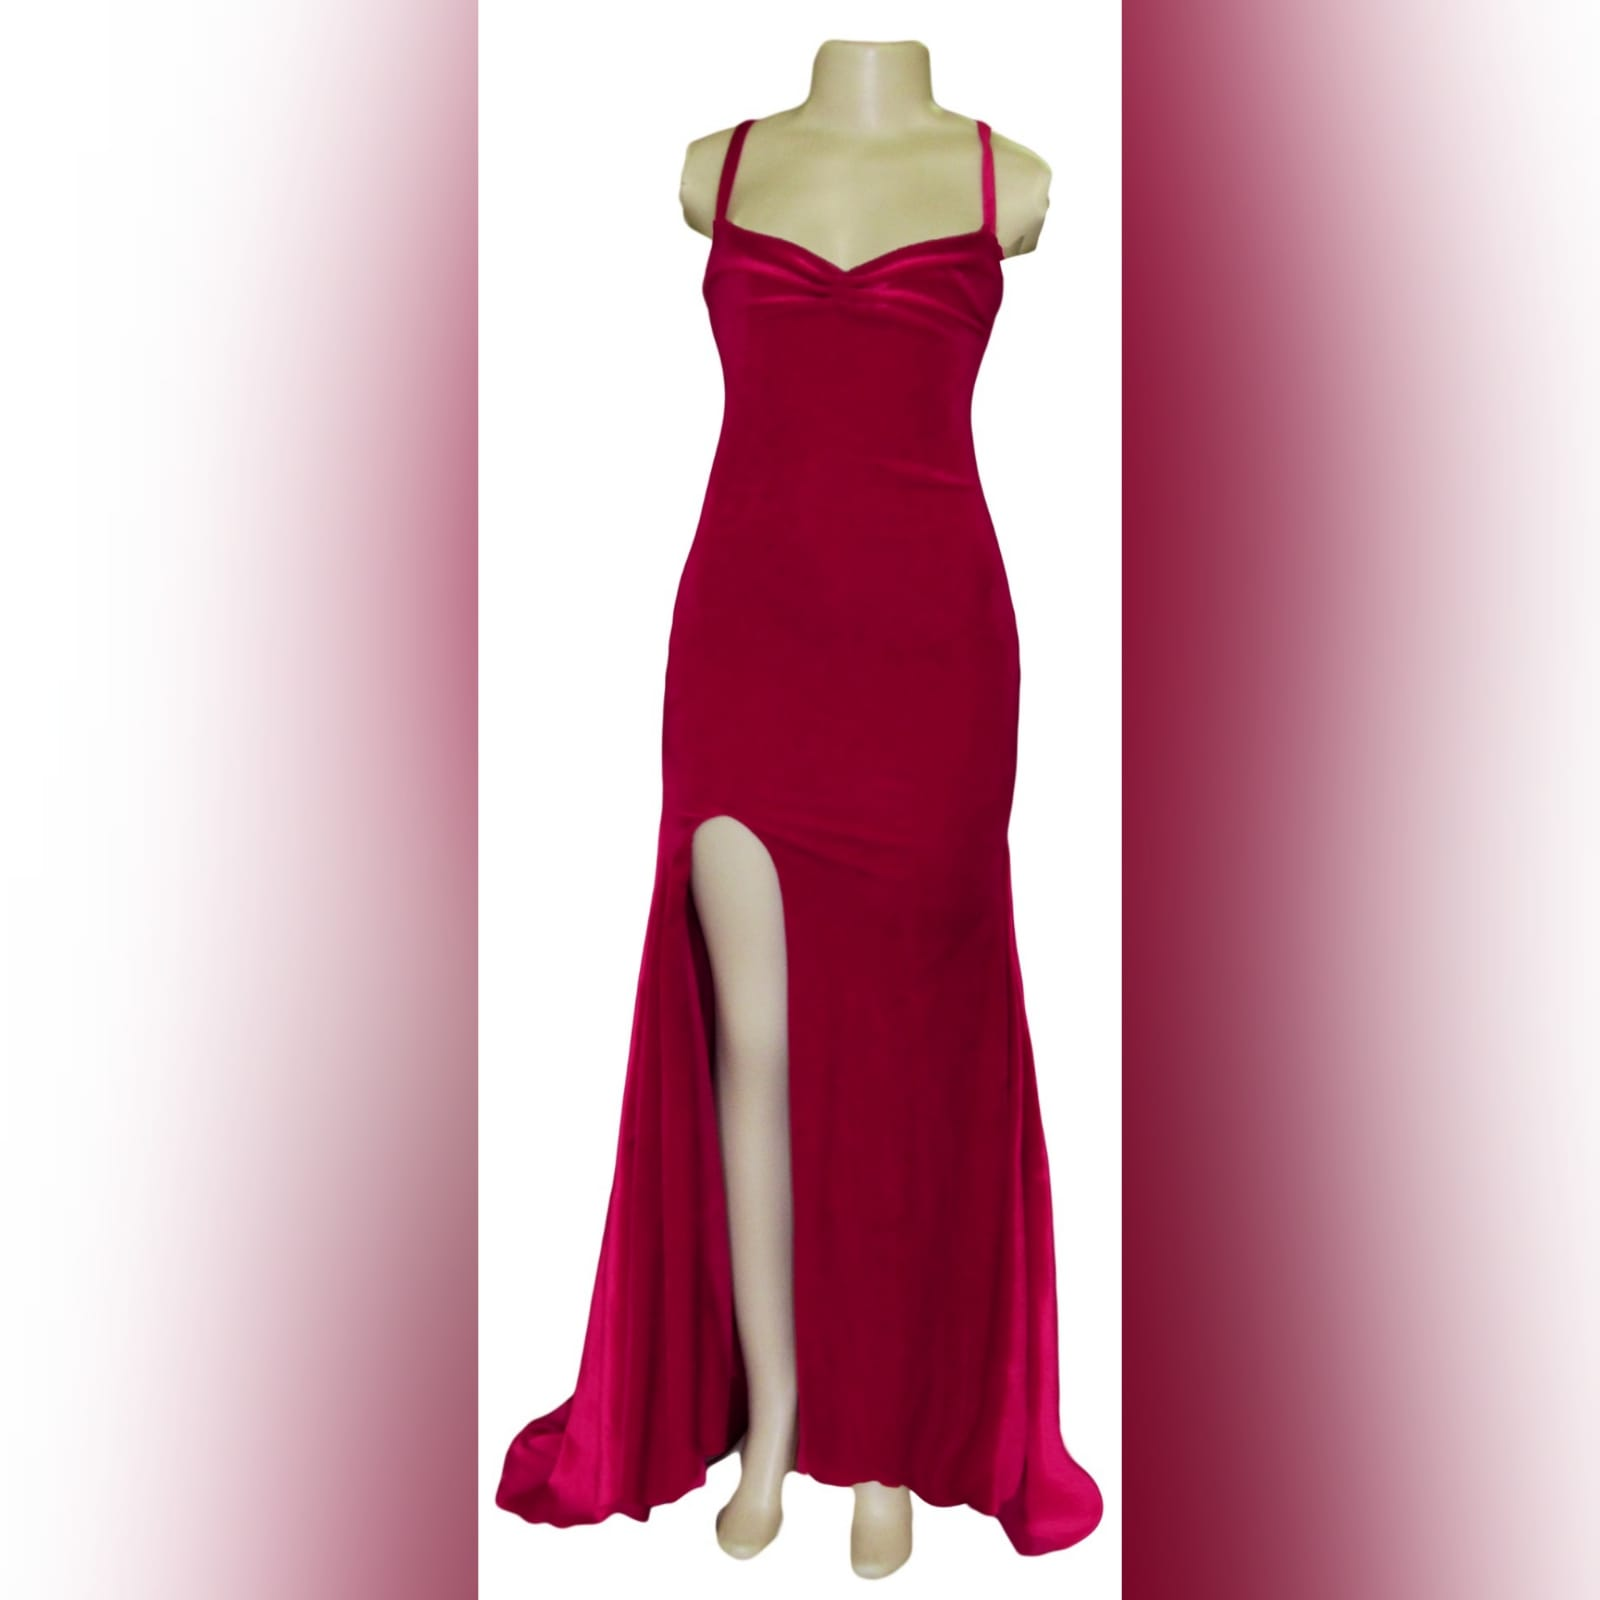 Red velvet long fitted evening party dress 4 red velvet long fitted evening party dress. This design has a laceup back which adds a stunning look to it and also helps adjust the dress fit. It has a high slit and a train for a dramatic effect.